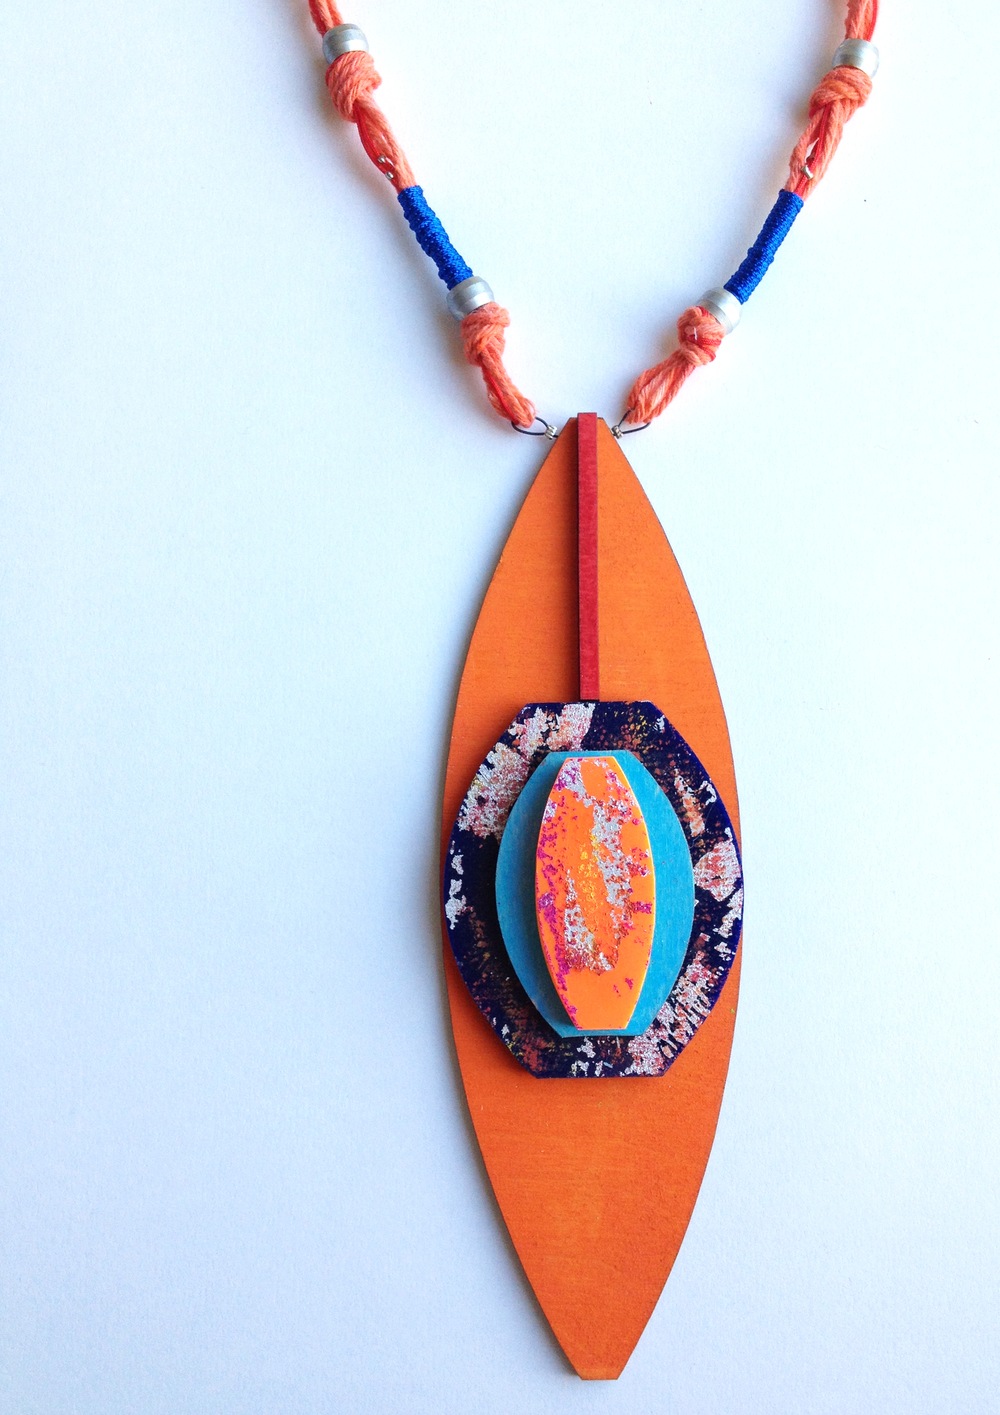 HannahMiles-african sky and dust neckpiece-lasercut pine,acrylic,printedfoiling,dyedstring,painted jump rings,crimp beads-necklace pendant dimensions 21cmx6.5cm, total length of piece inculding cording 42cm.jpg